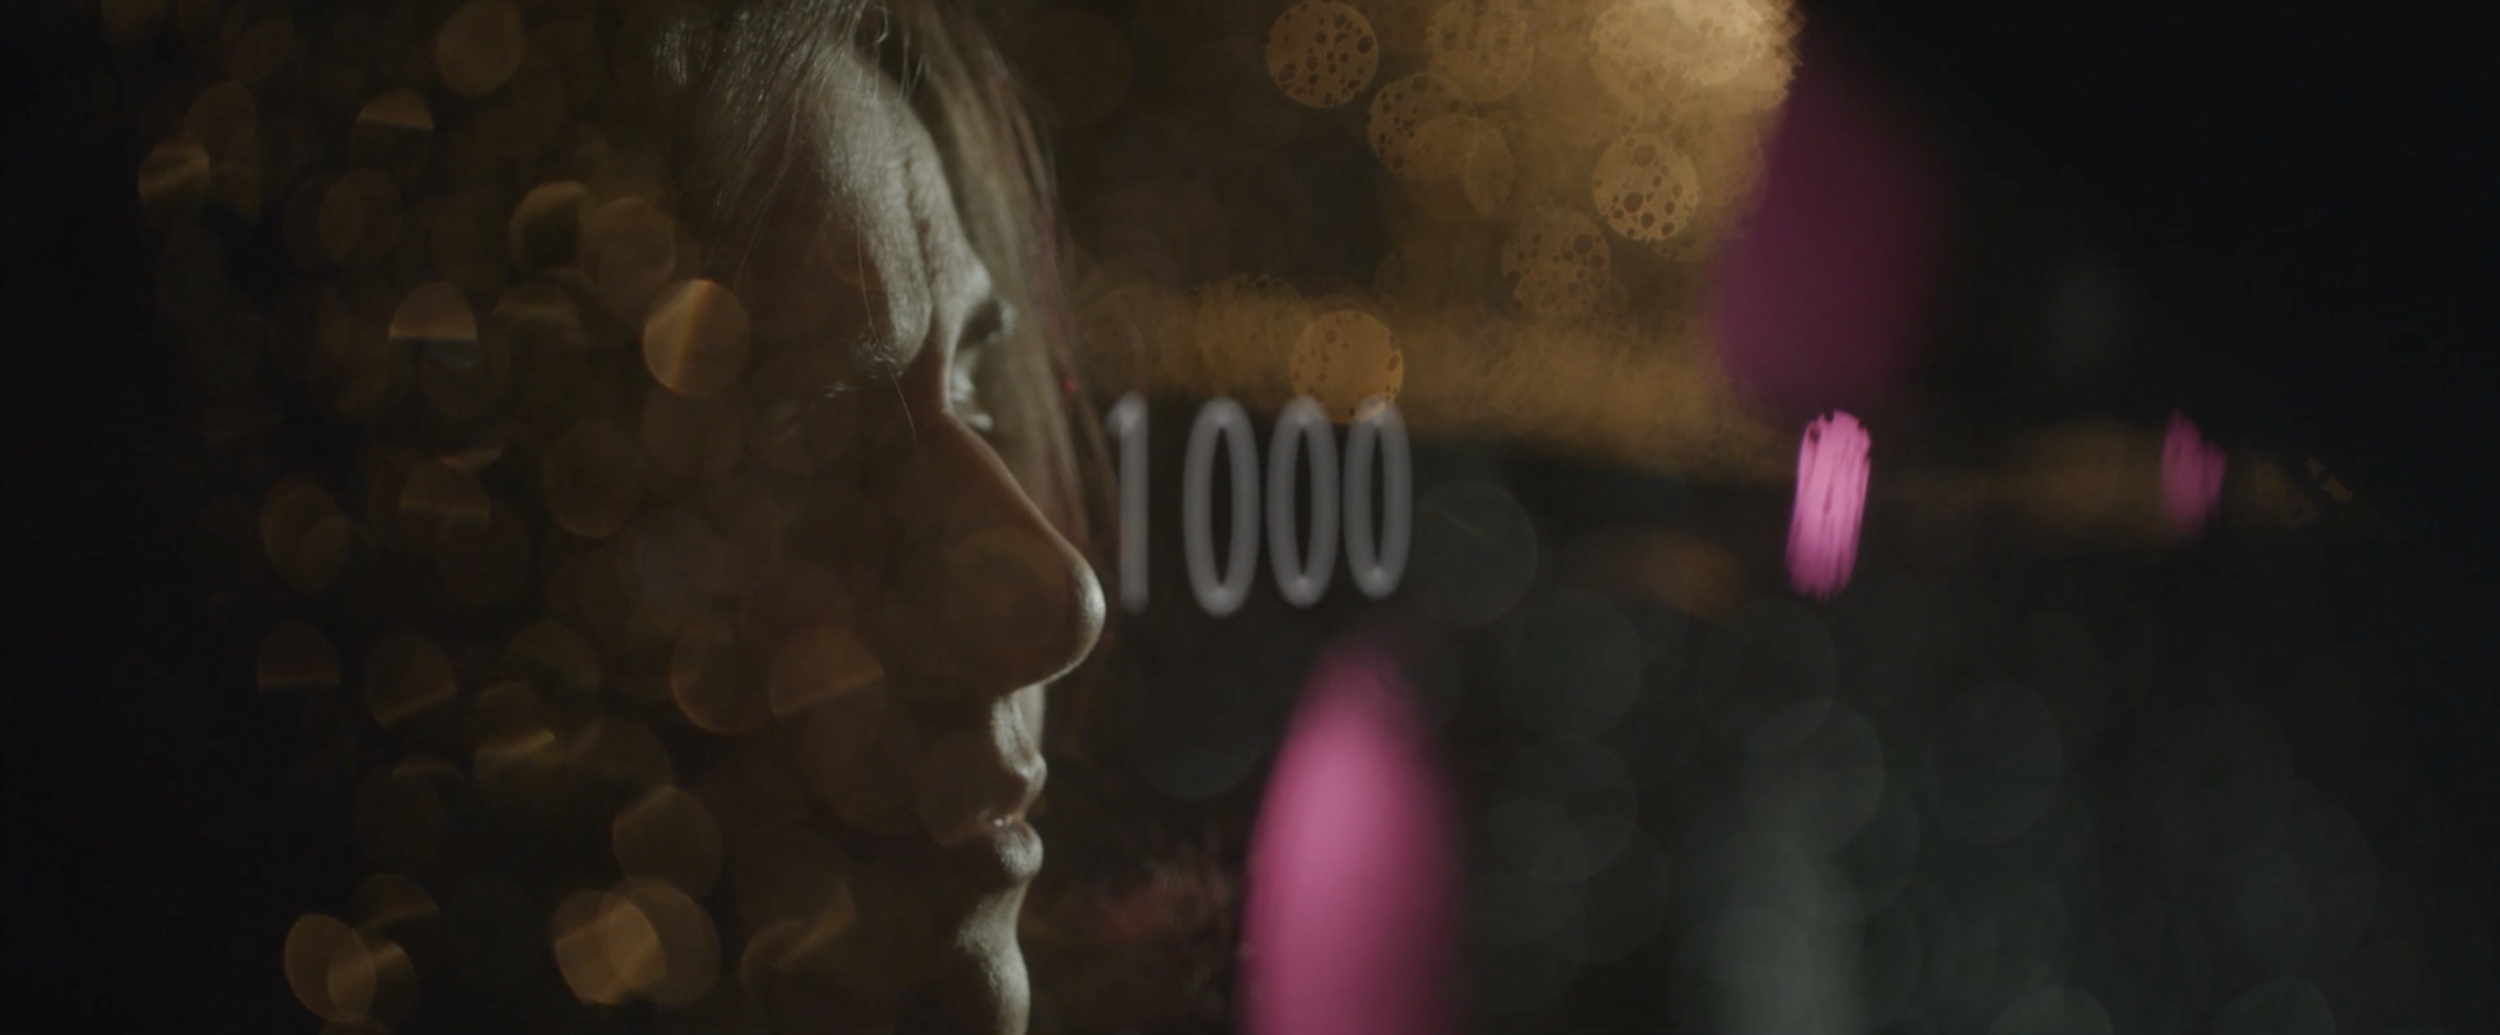 """Still from Firewood Pictures' """"Your Last 1000 Days"""""""